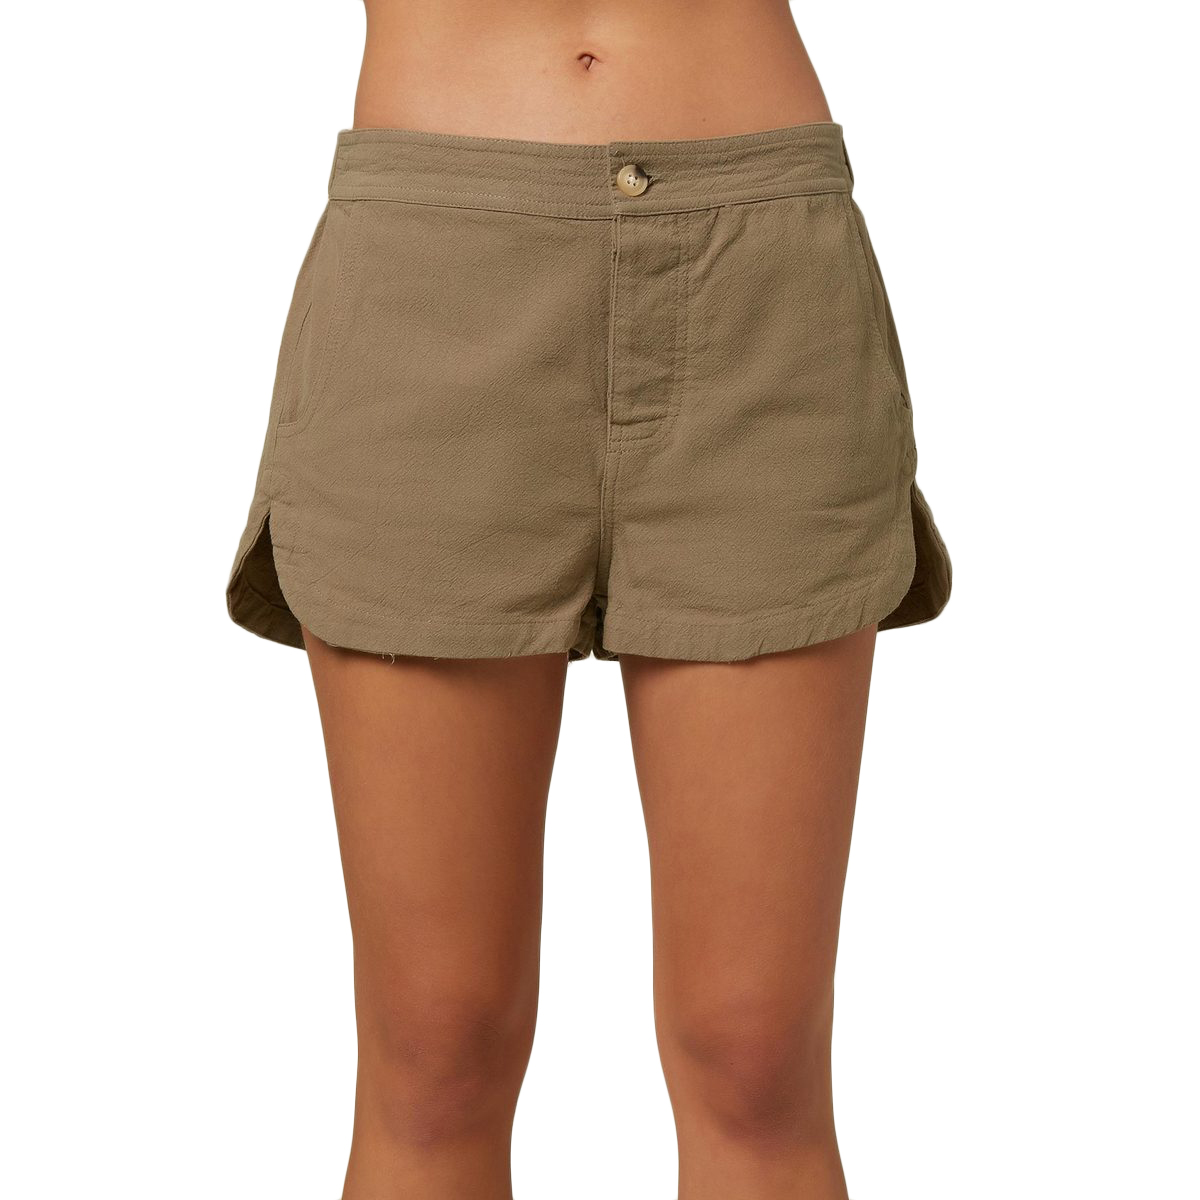 O'neill Women's Bismark Shorts - Green, XS